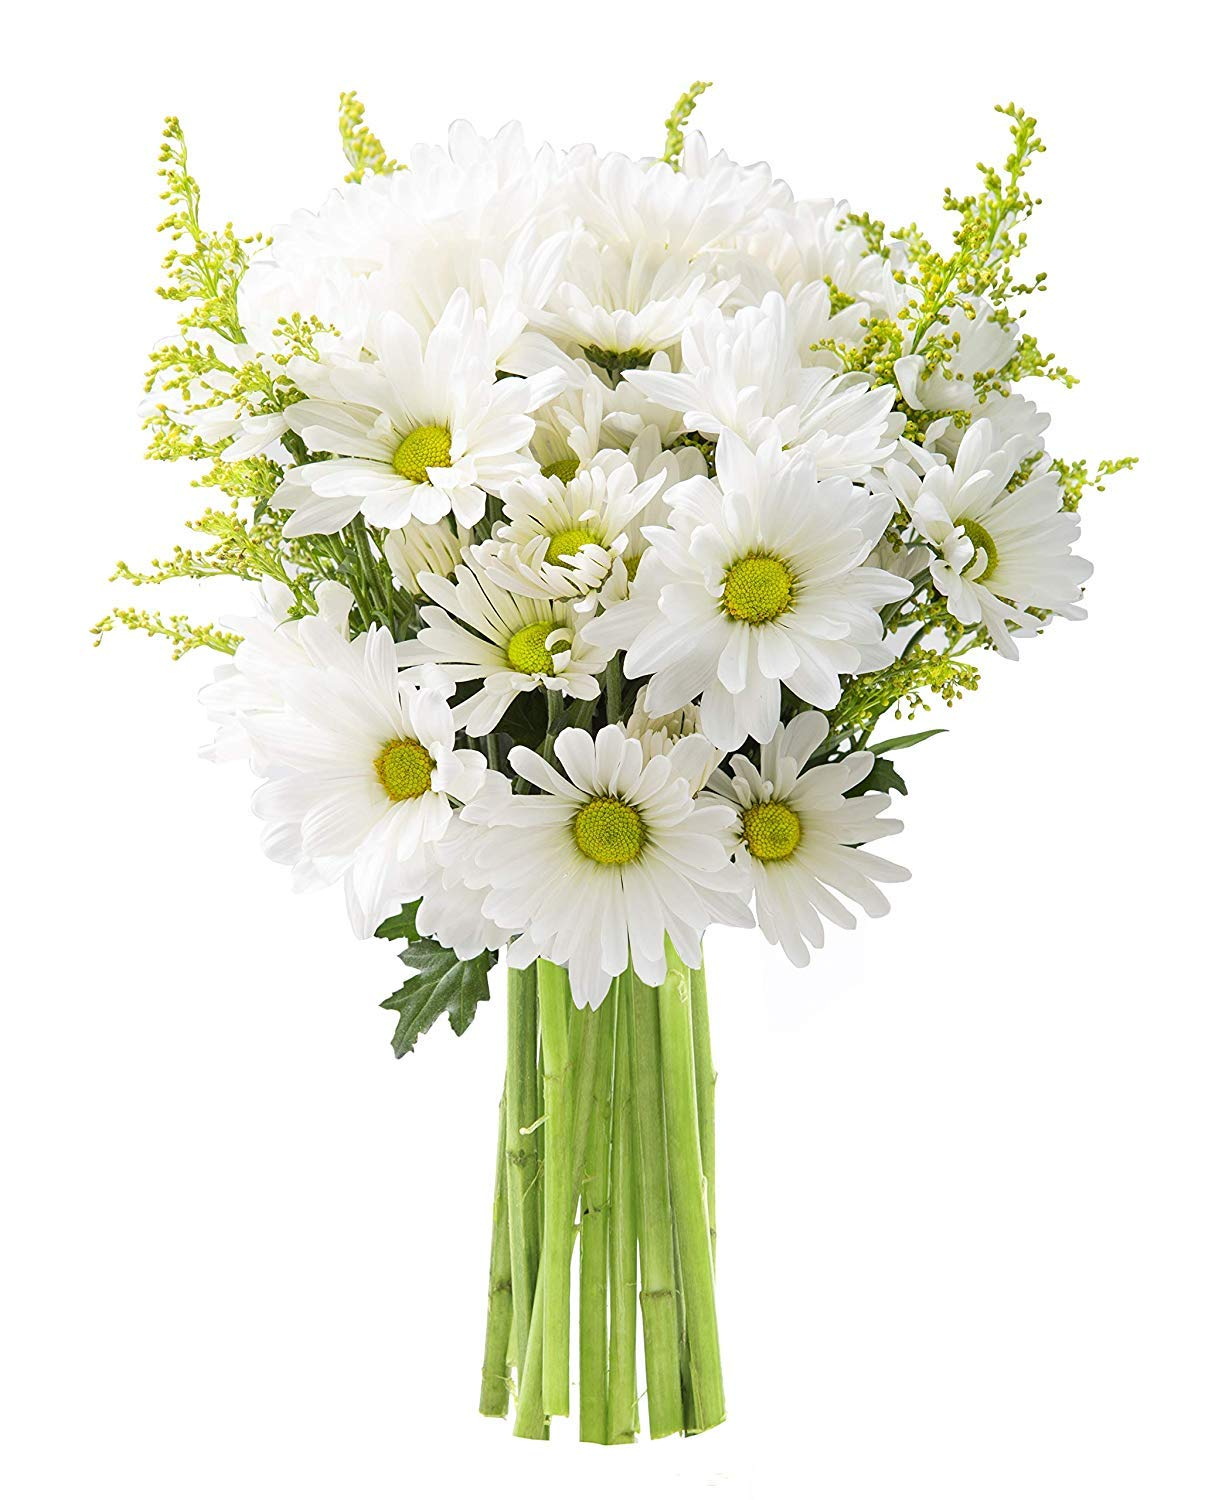 KaBloom Bountiful Beauty Bouquet of Fresh White Daisies by KaBloom (Image #2)